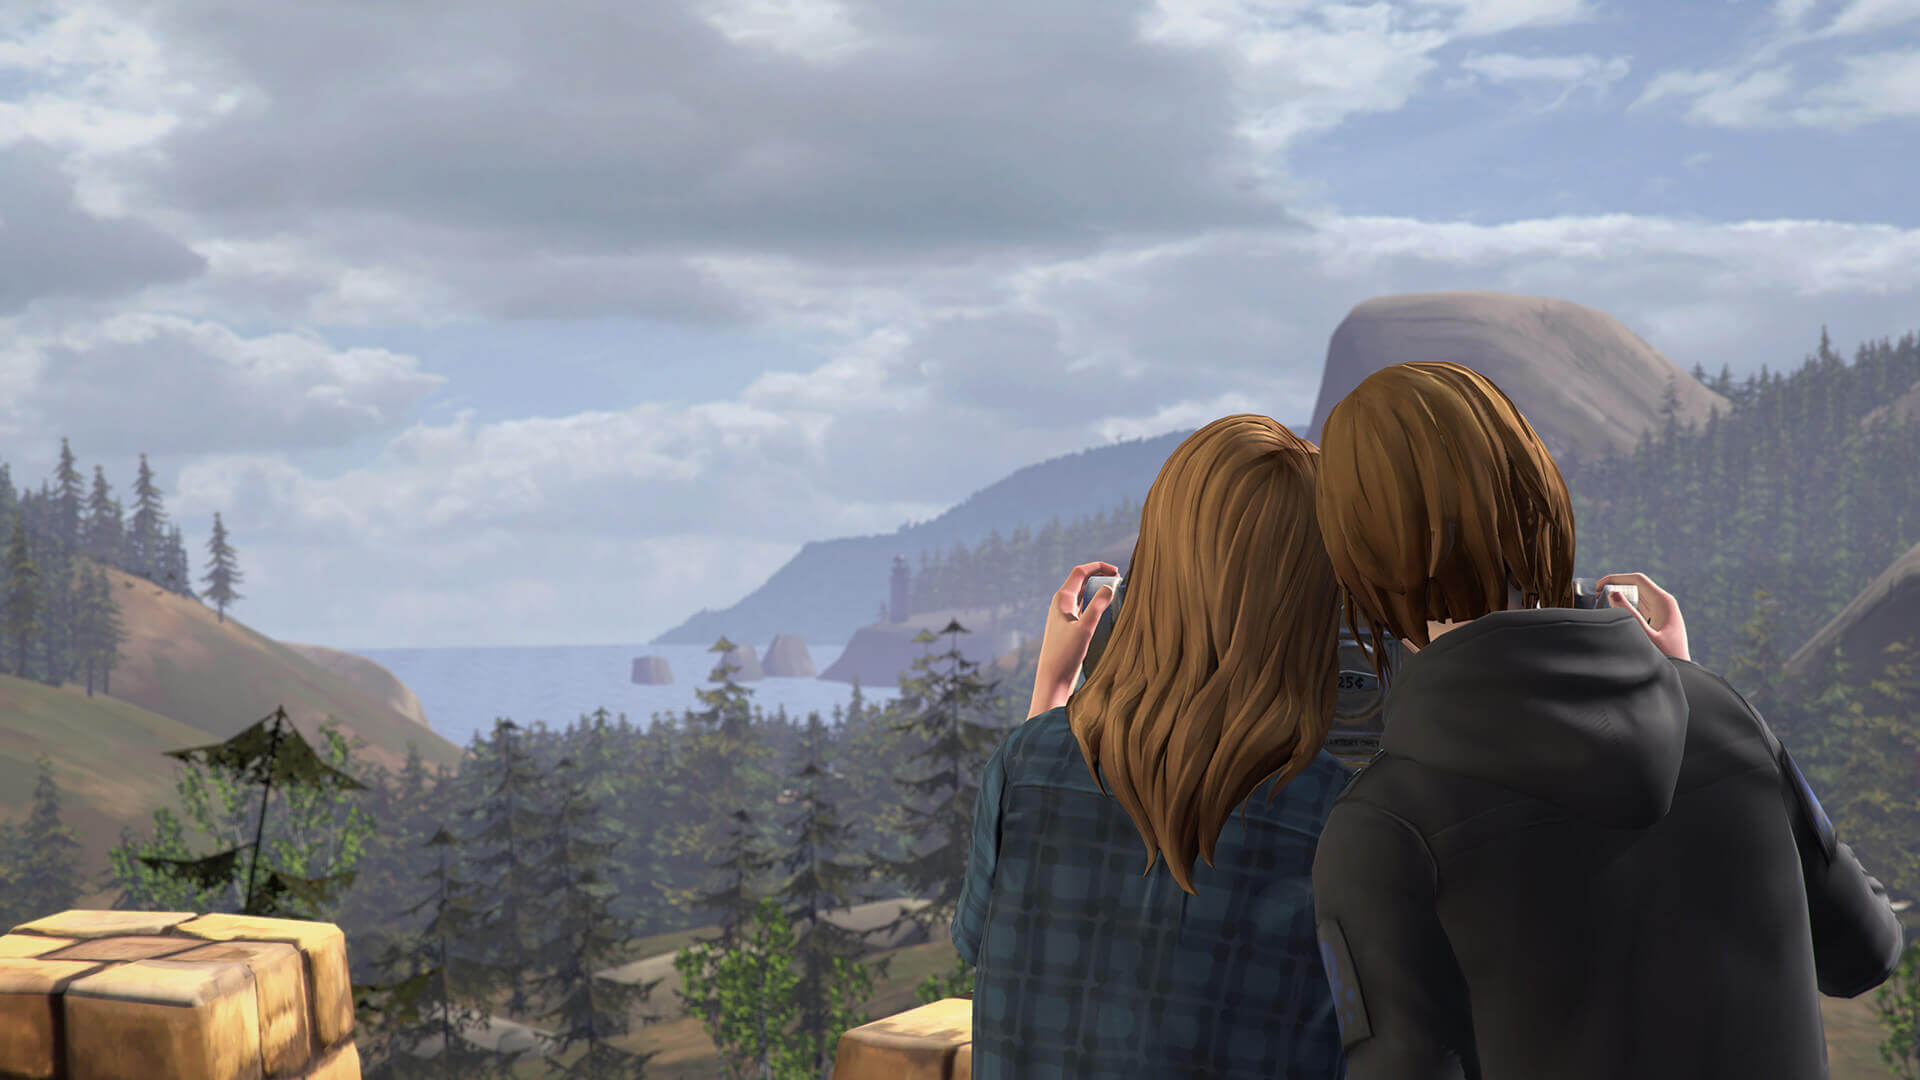 Life is Strange: Before the Storm, Square Enix